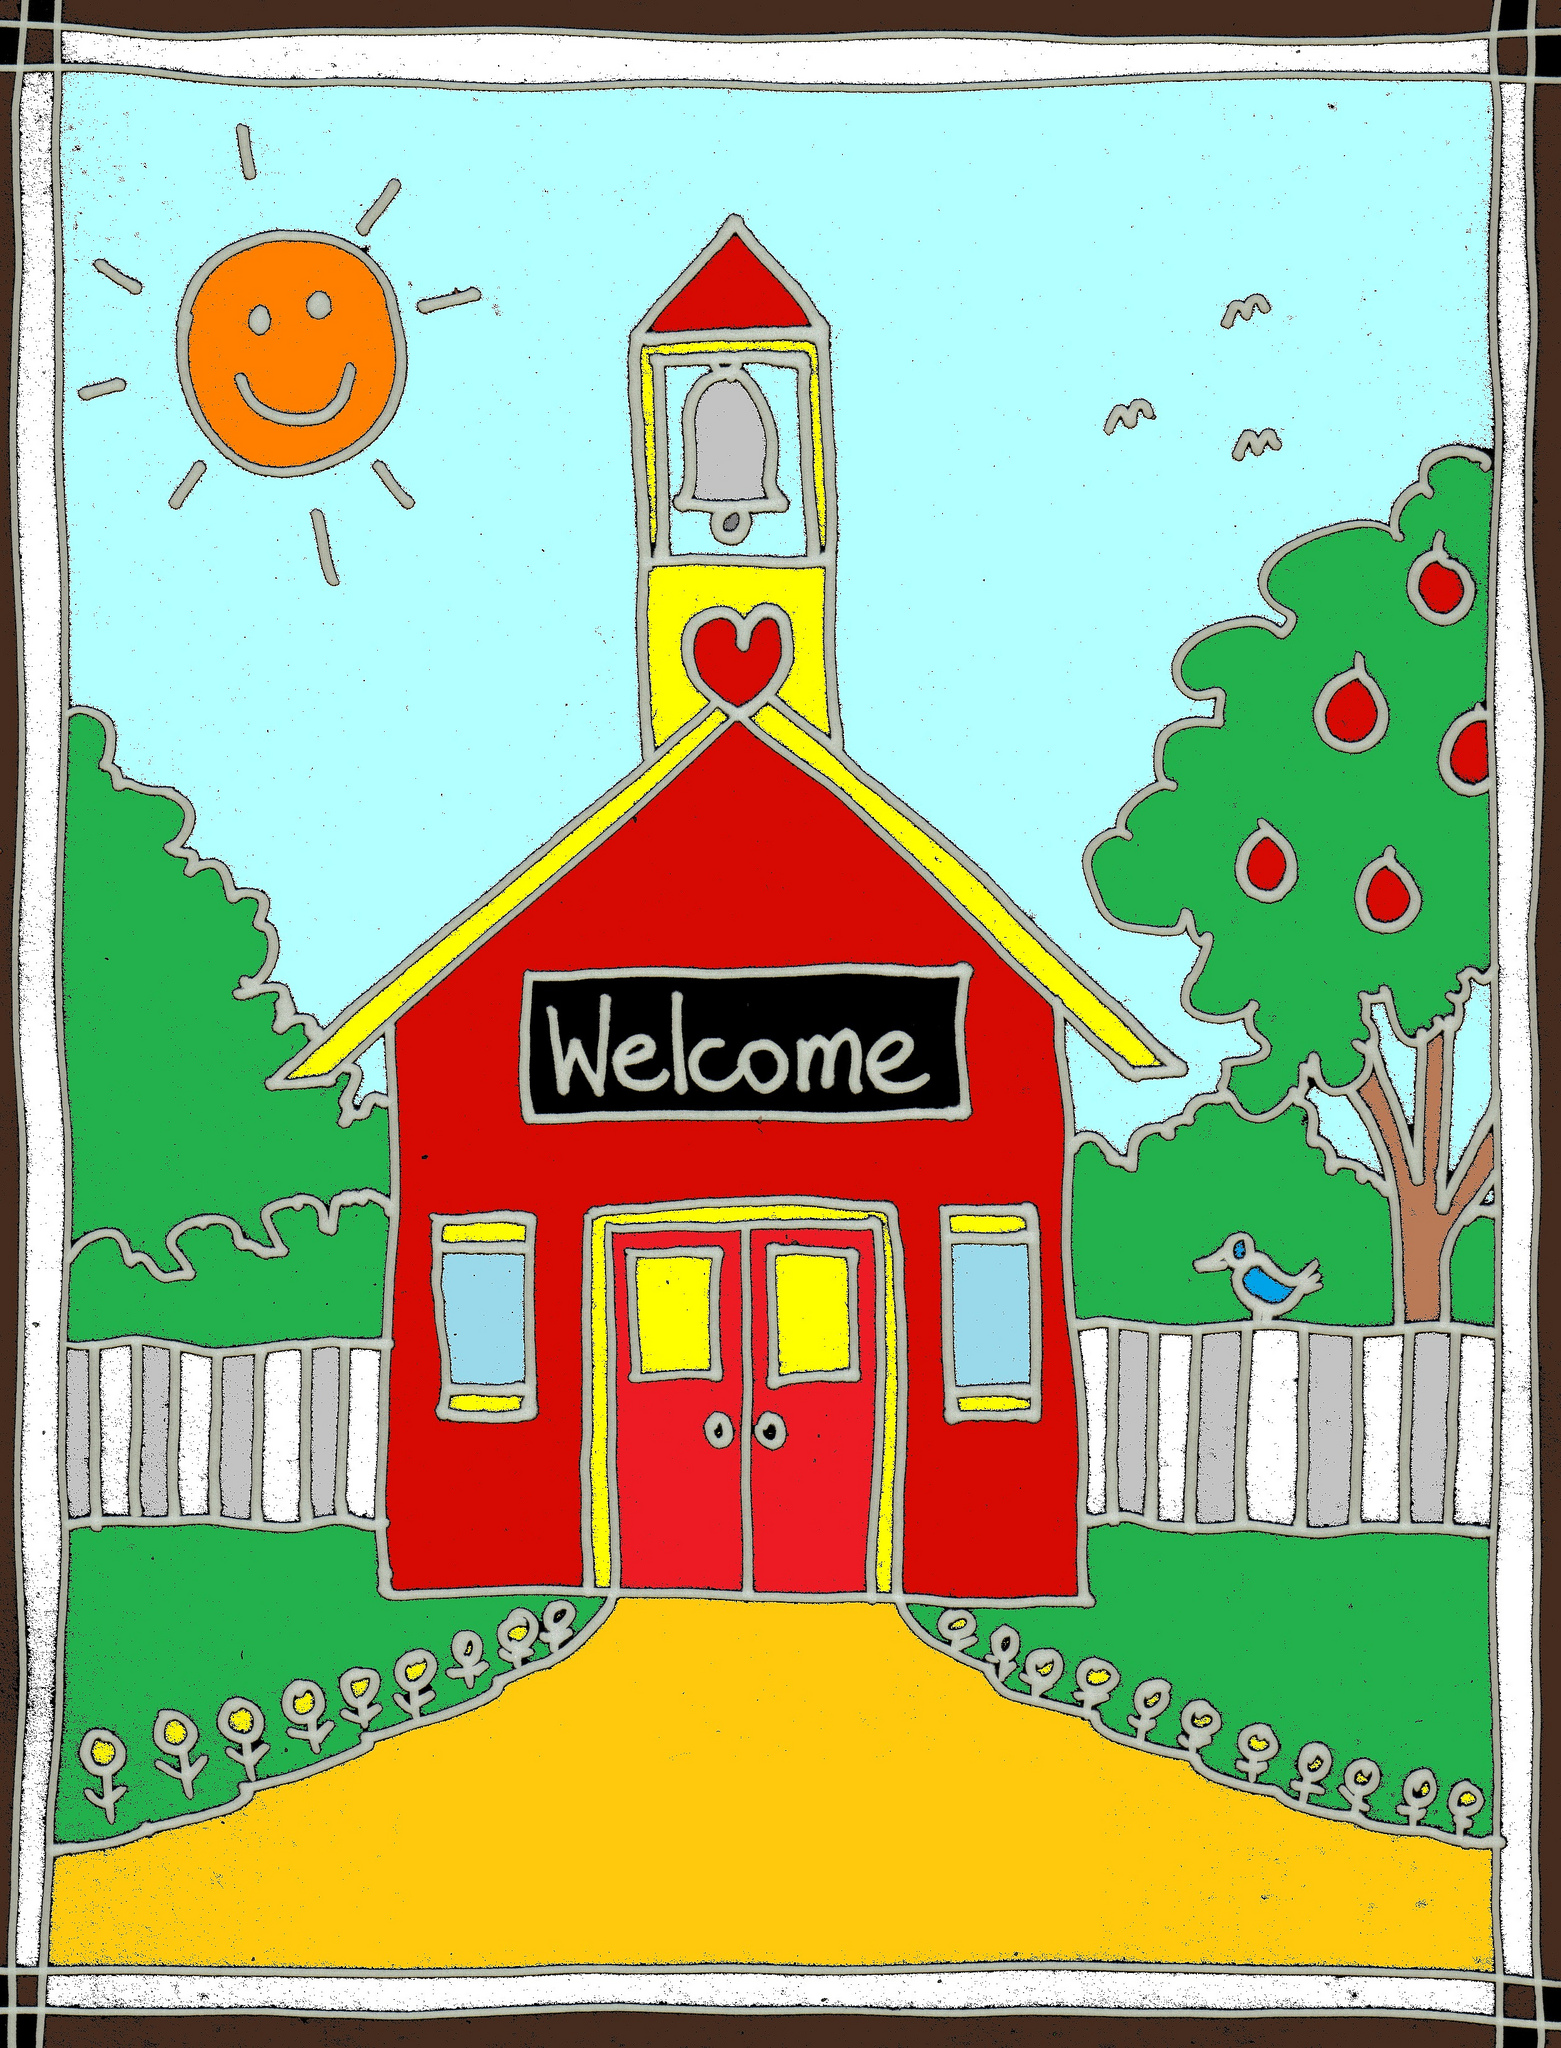 Image of Classroom Welcome Clipart #12705, Teacher Welcome Student.